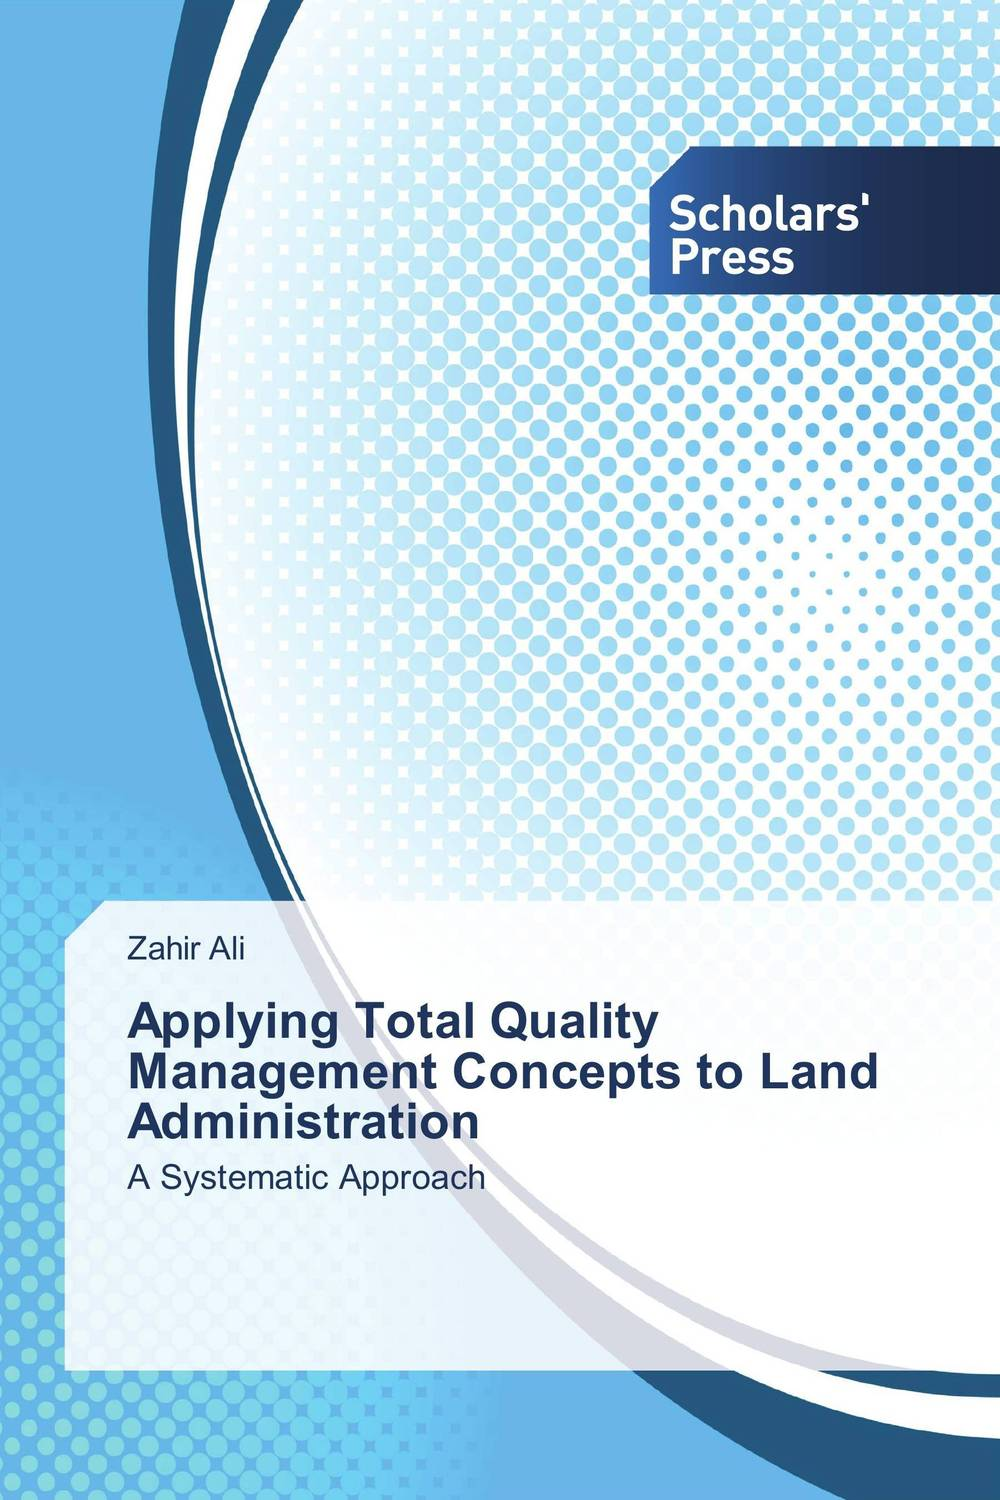 Applying Total Quality Management Concepts to Land Administration total quality management to gain competitive advantages